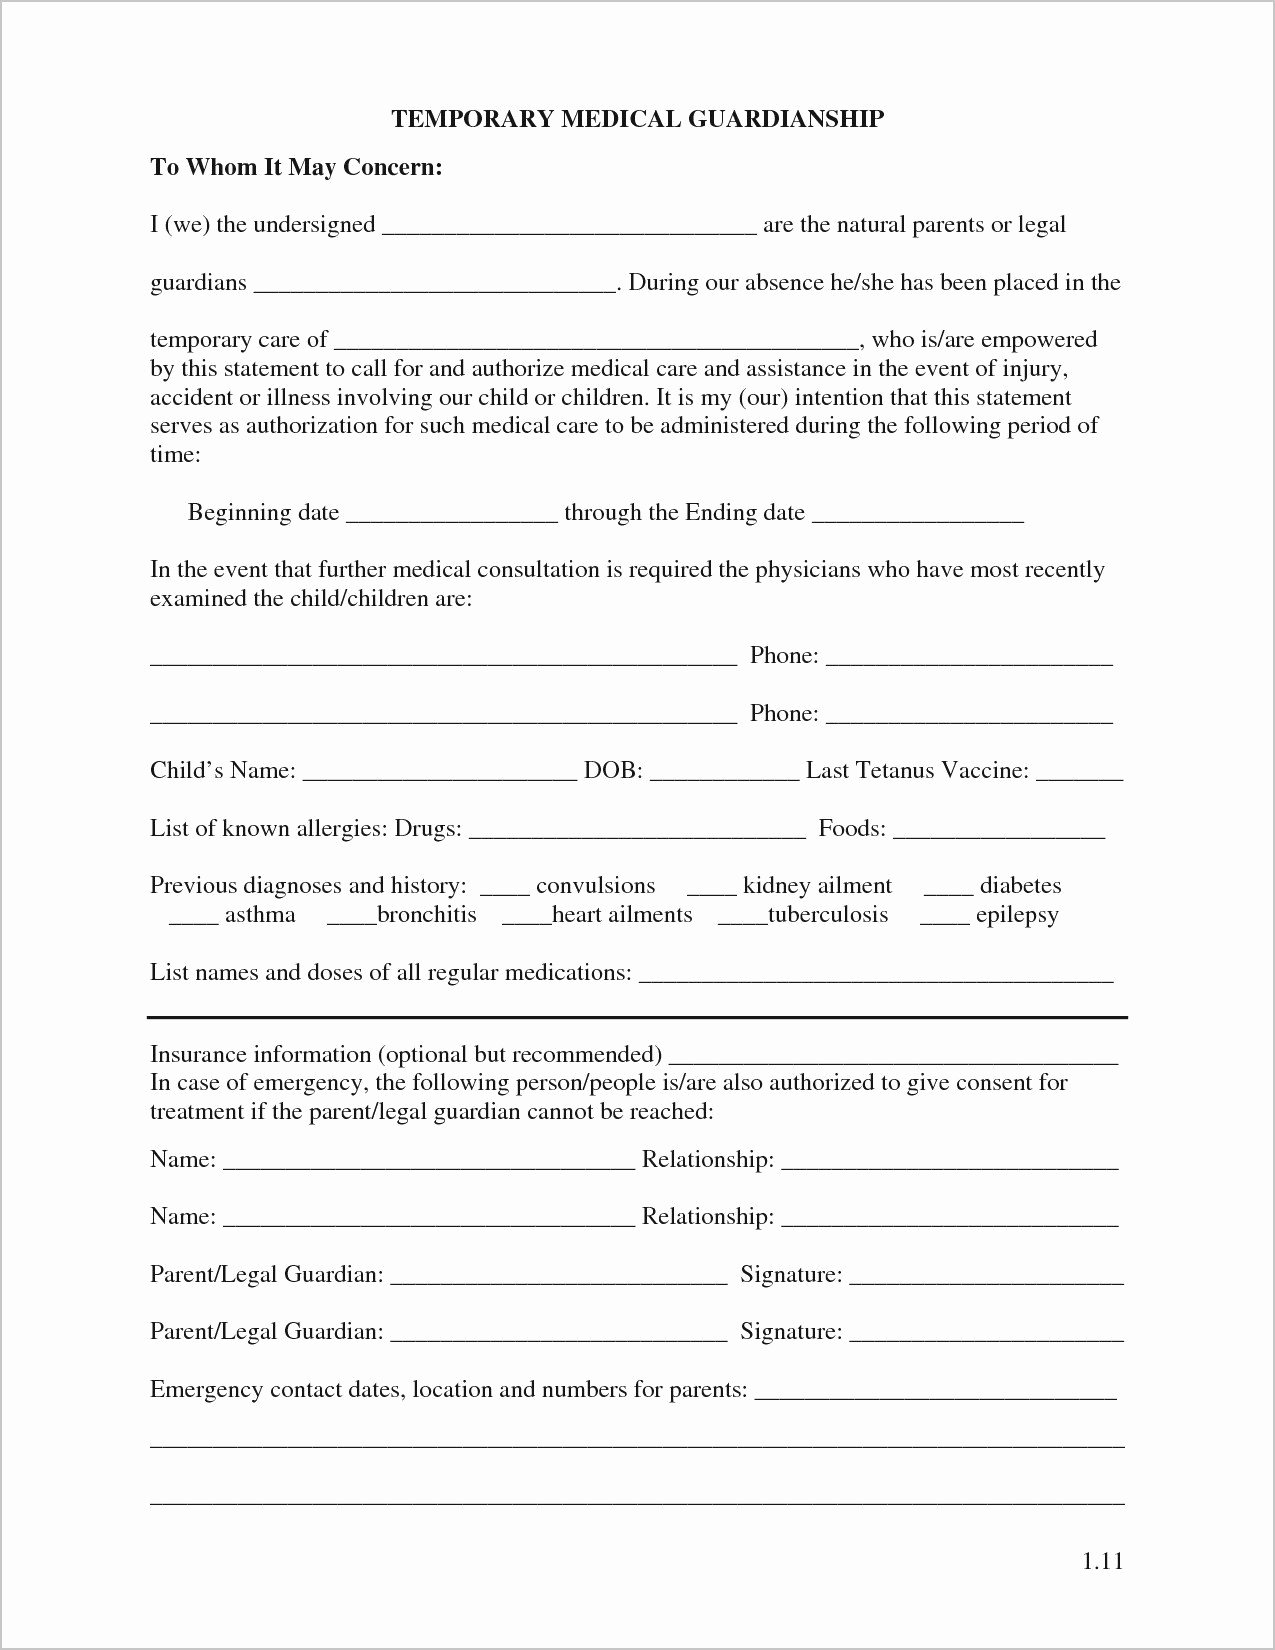 Sole Custody Agreement Template Inspirational Incredible Image Joint Custody Agreement